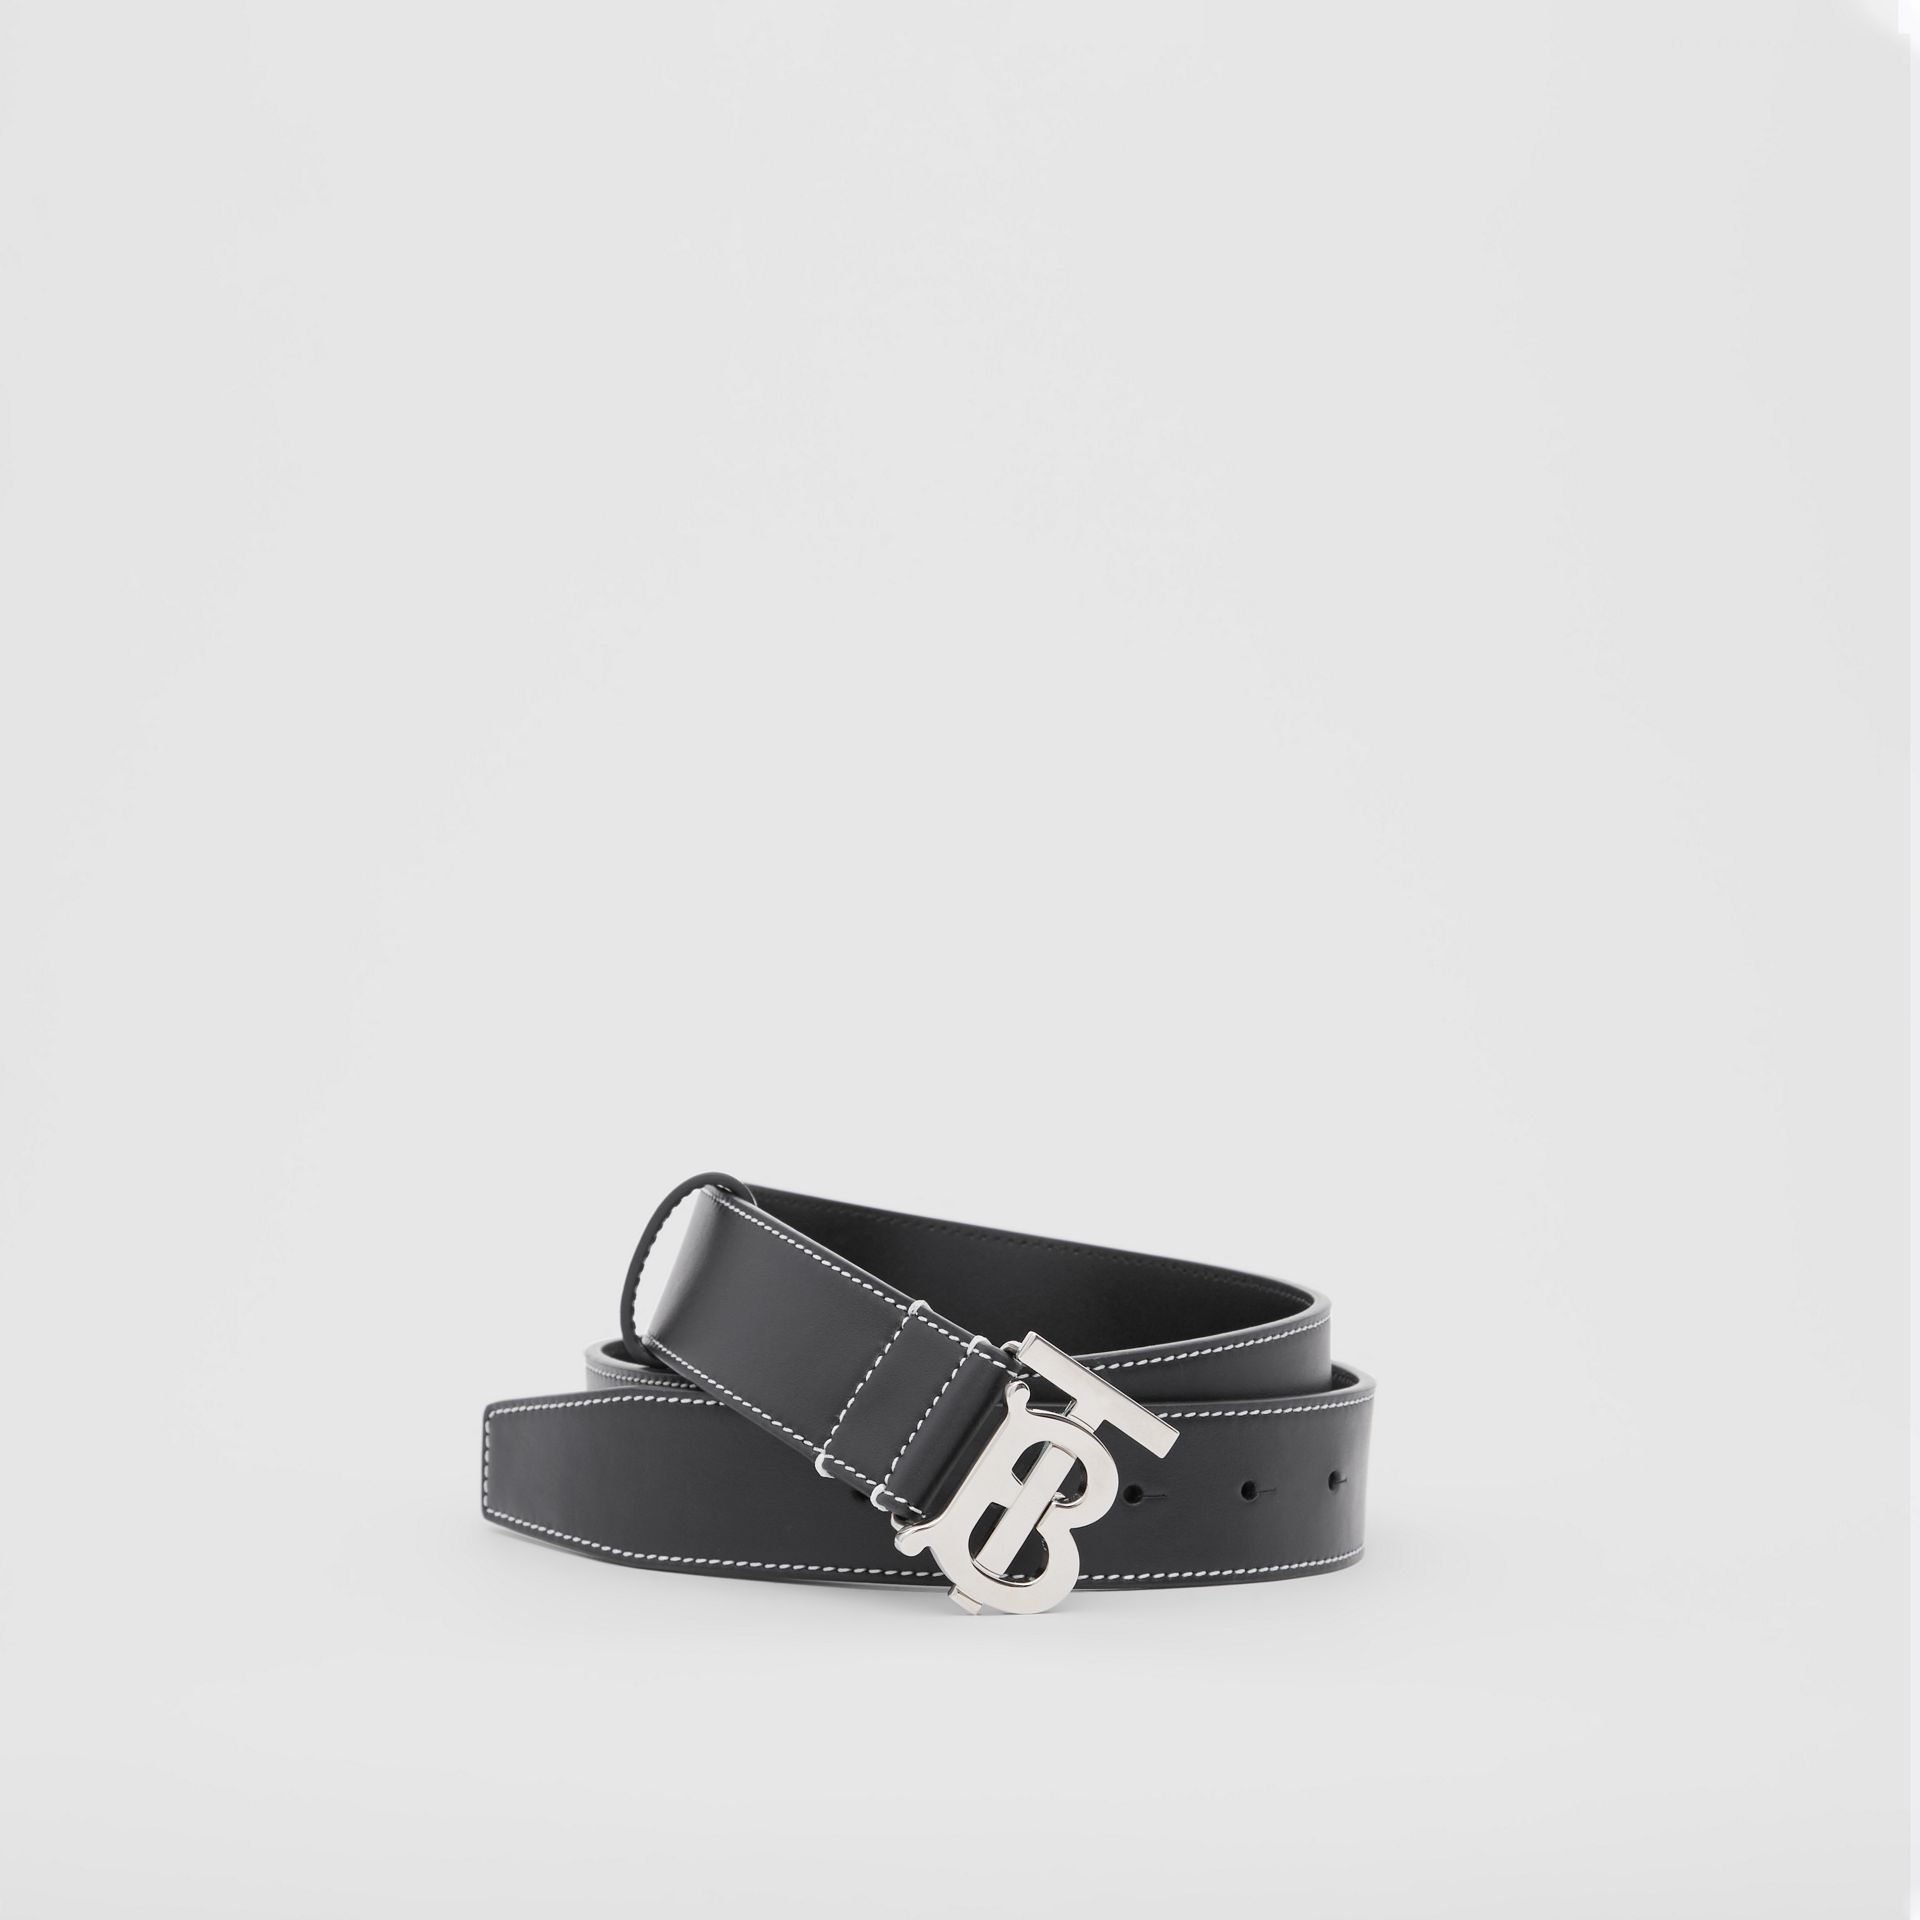 Monogram Motif Topstitched Leather Belt in Black - Men | Burberry - gallery image 0